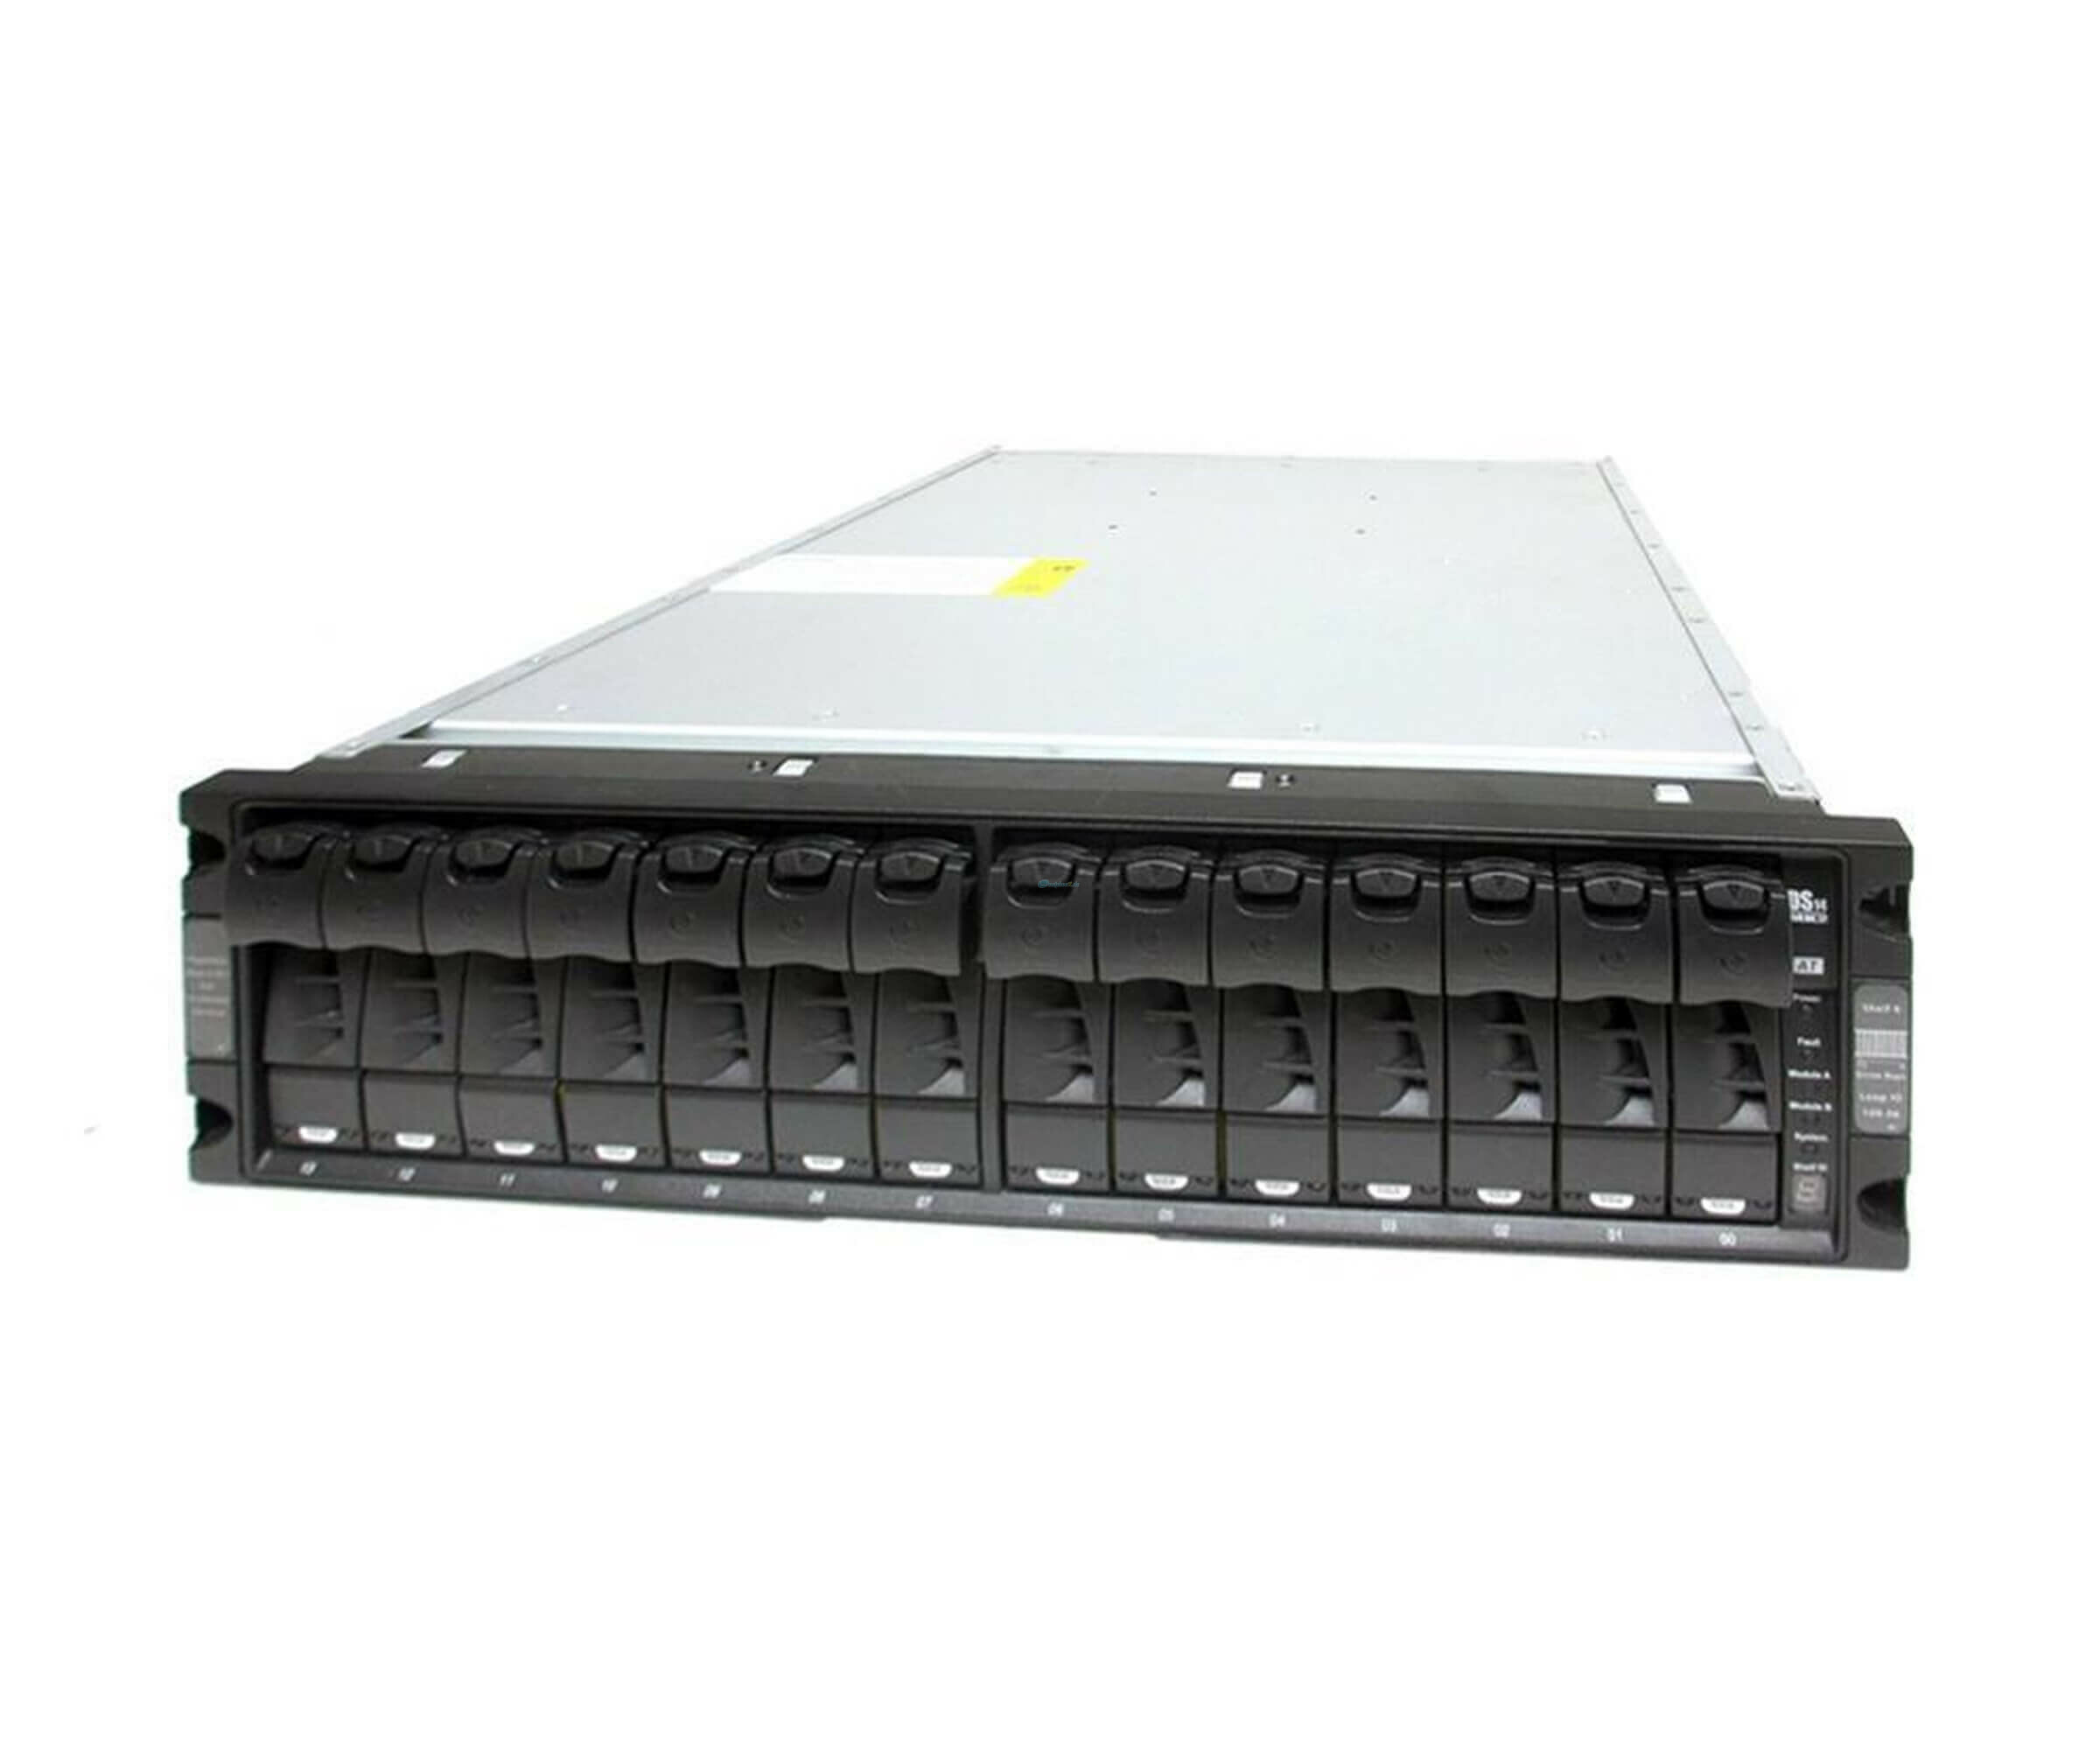 NetApp StorageShelf DS14MK2  DS14 MK2 - 14x 500GB SATA HDD - 2x AT-FCX - Used